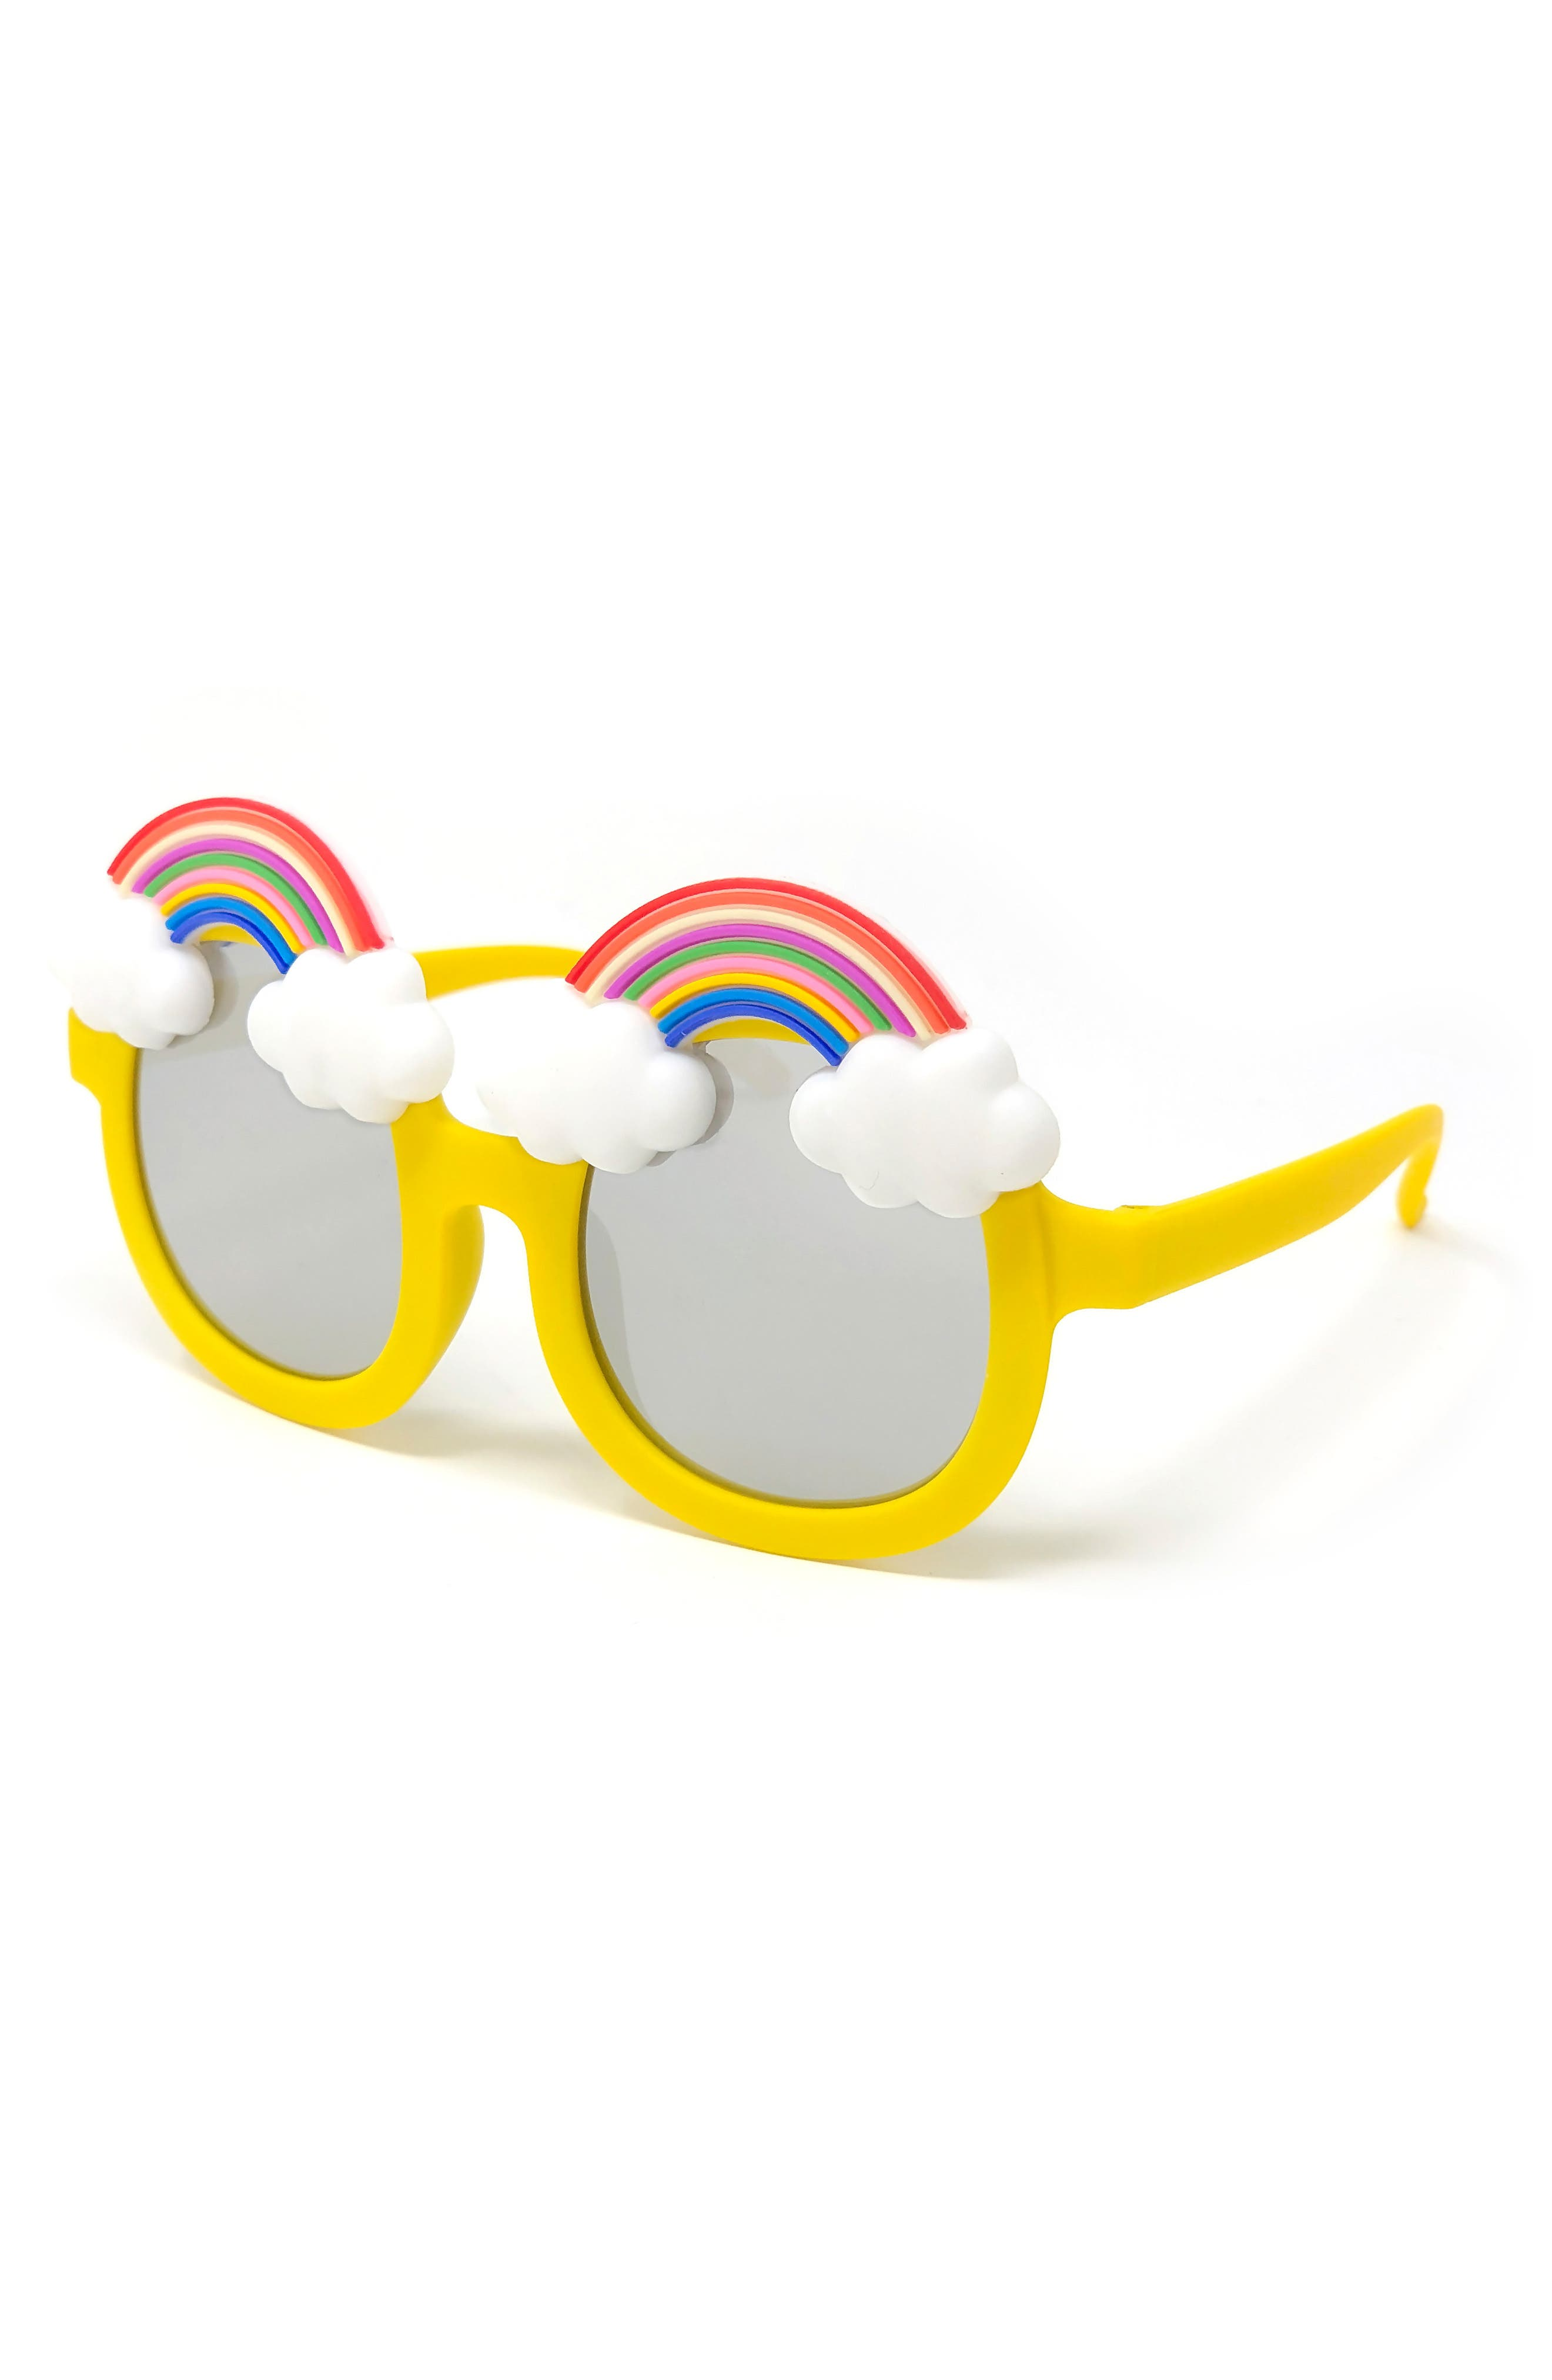 Infant Girls Loose Leaf Eyewear Rainbow Mirrored Sunglasses  Yellow